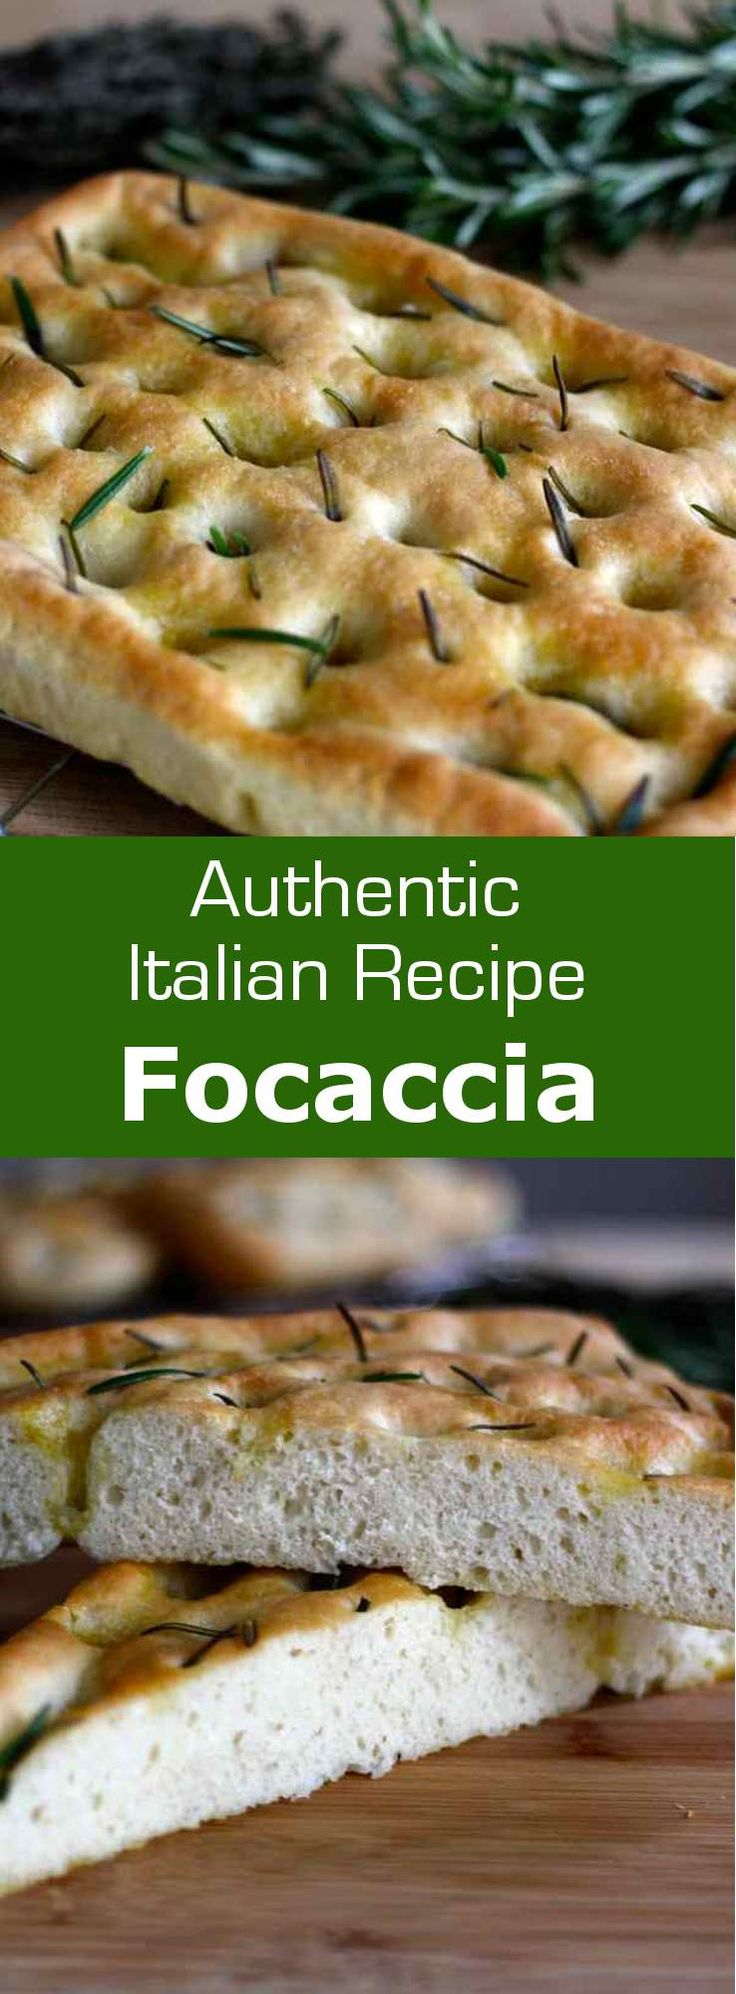 Focaccia di Genova is the original recipe for the traditional Italian bread with olive oil, salt and herbs, often including rosemary. #bread #italy